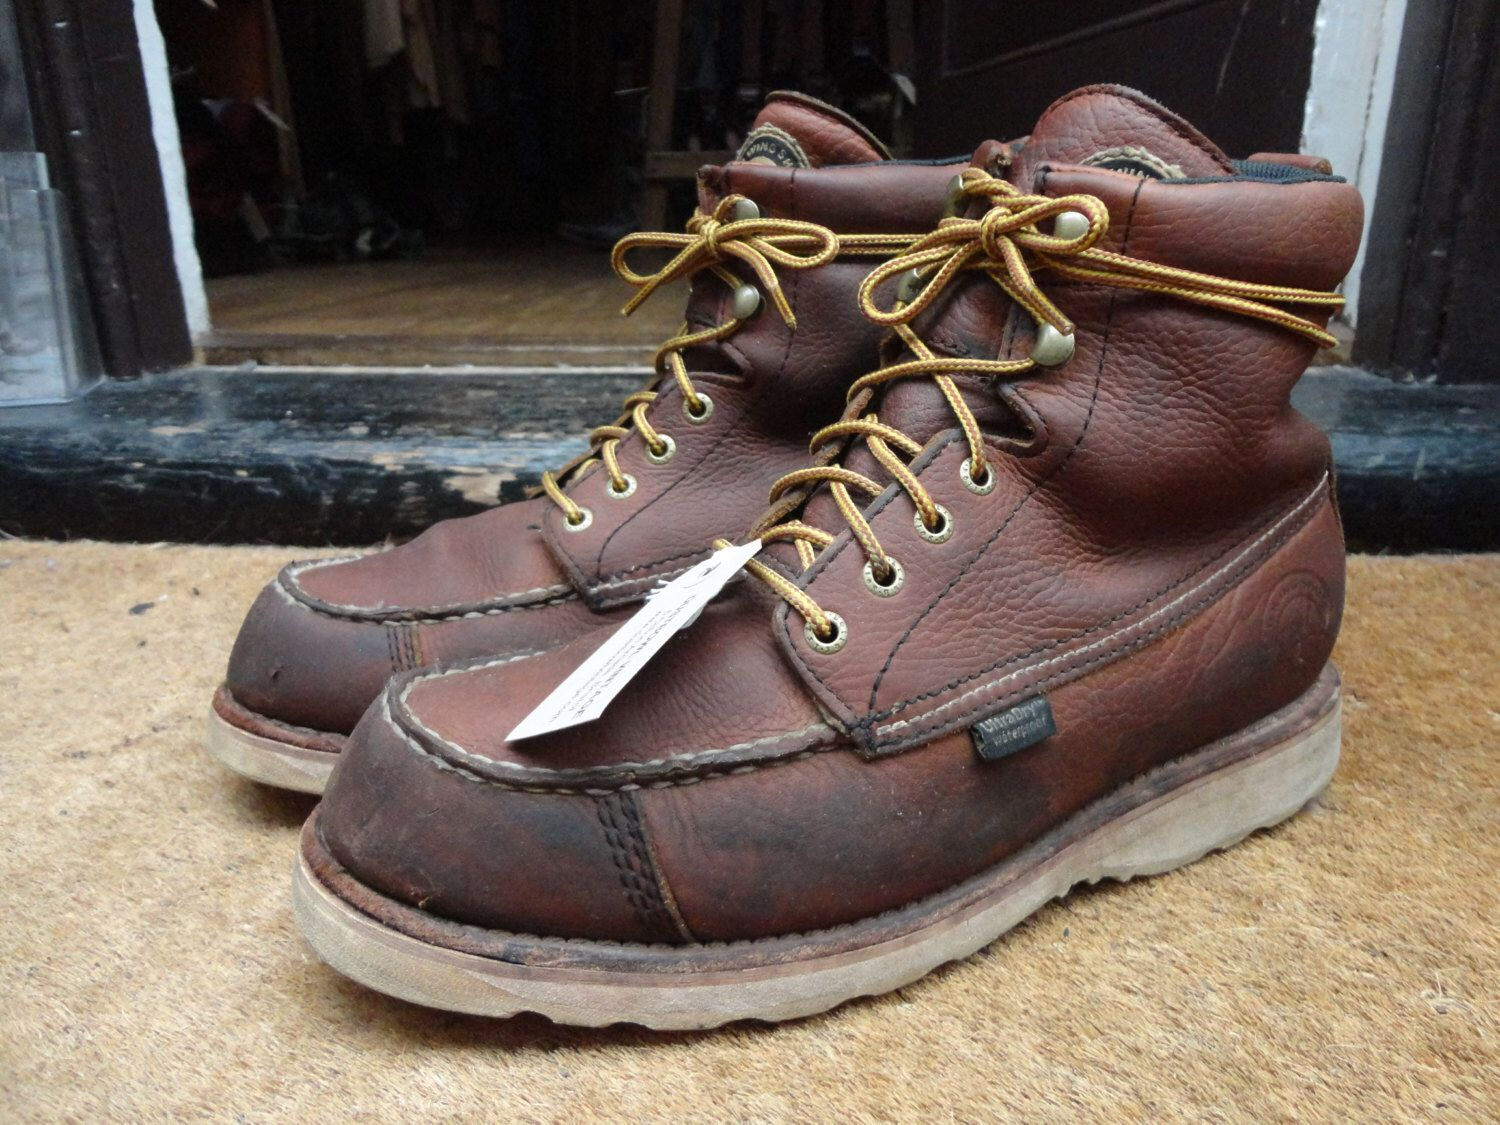 Leather work gloves ireland - Vintage Red Wing Irish Setter Brown Leather Moc Toe Work Boots White Sole 838 Us 10 Uk 9 Rugged Hunting